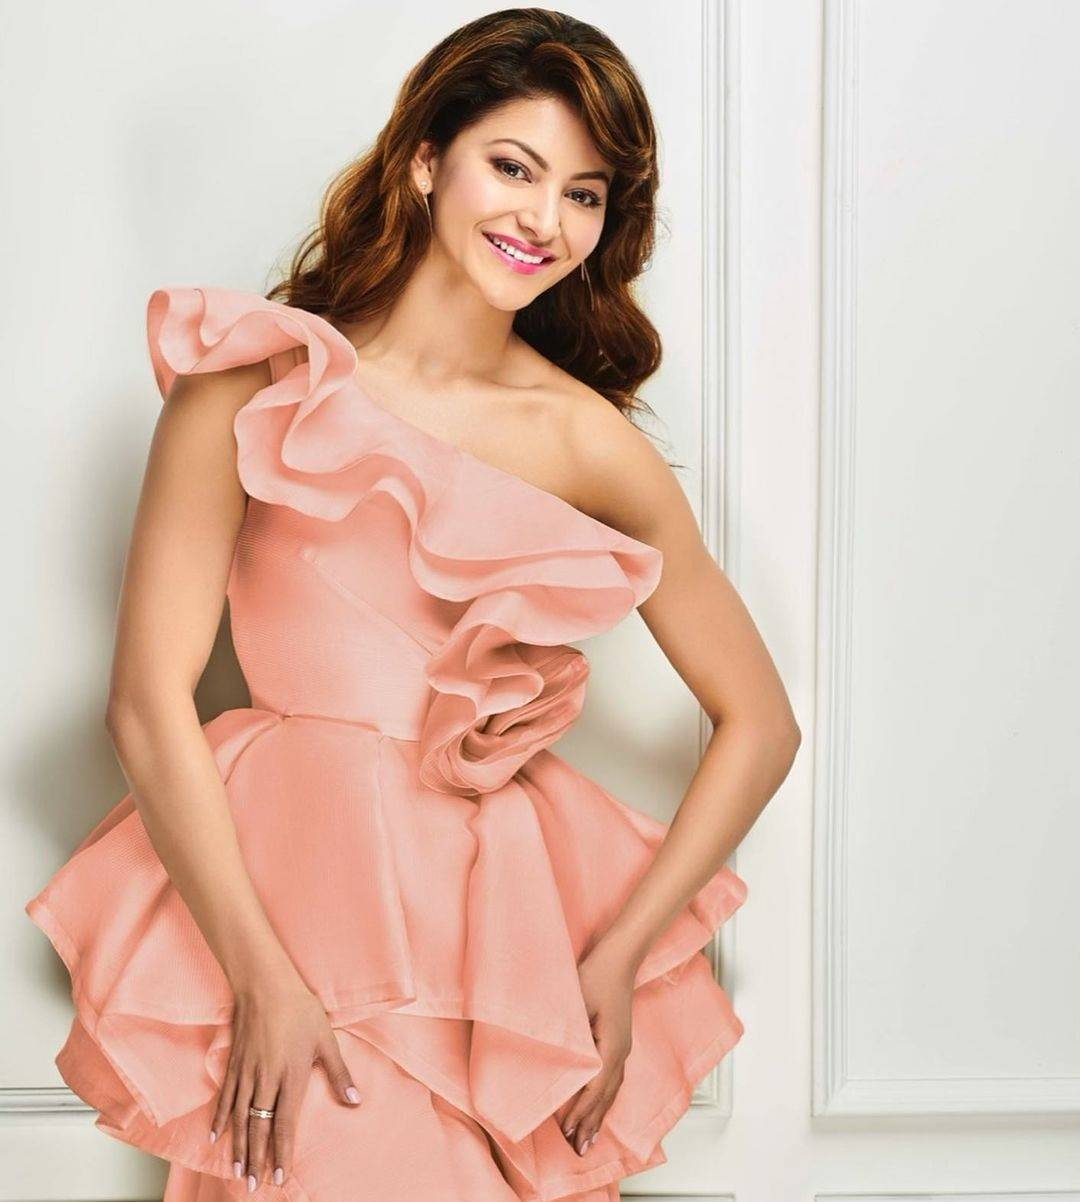 Happy Birthday Urvashi Rautela: Here are 10 interesting facts about the diva